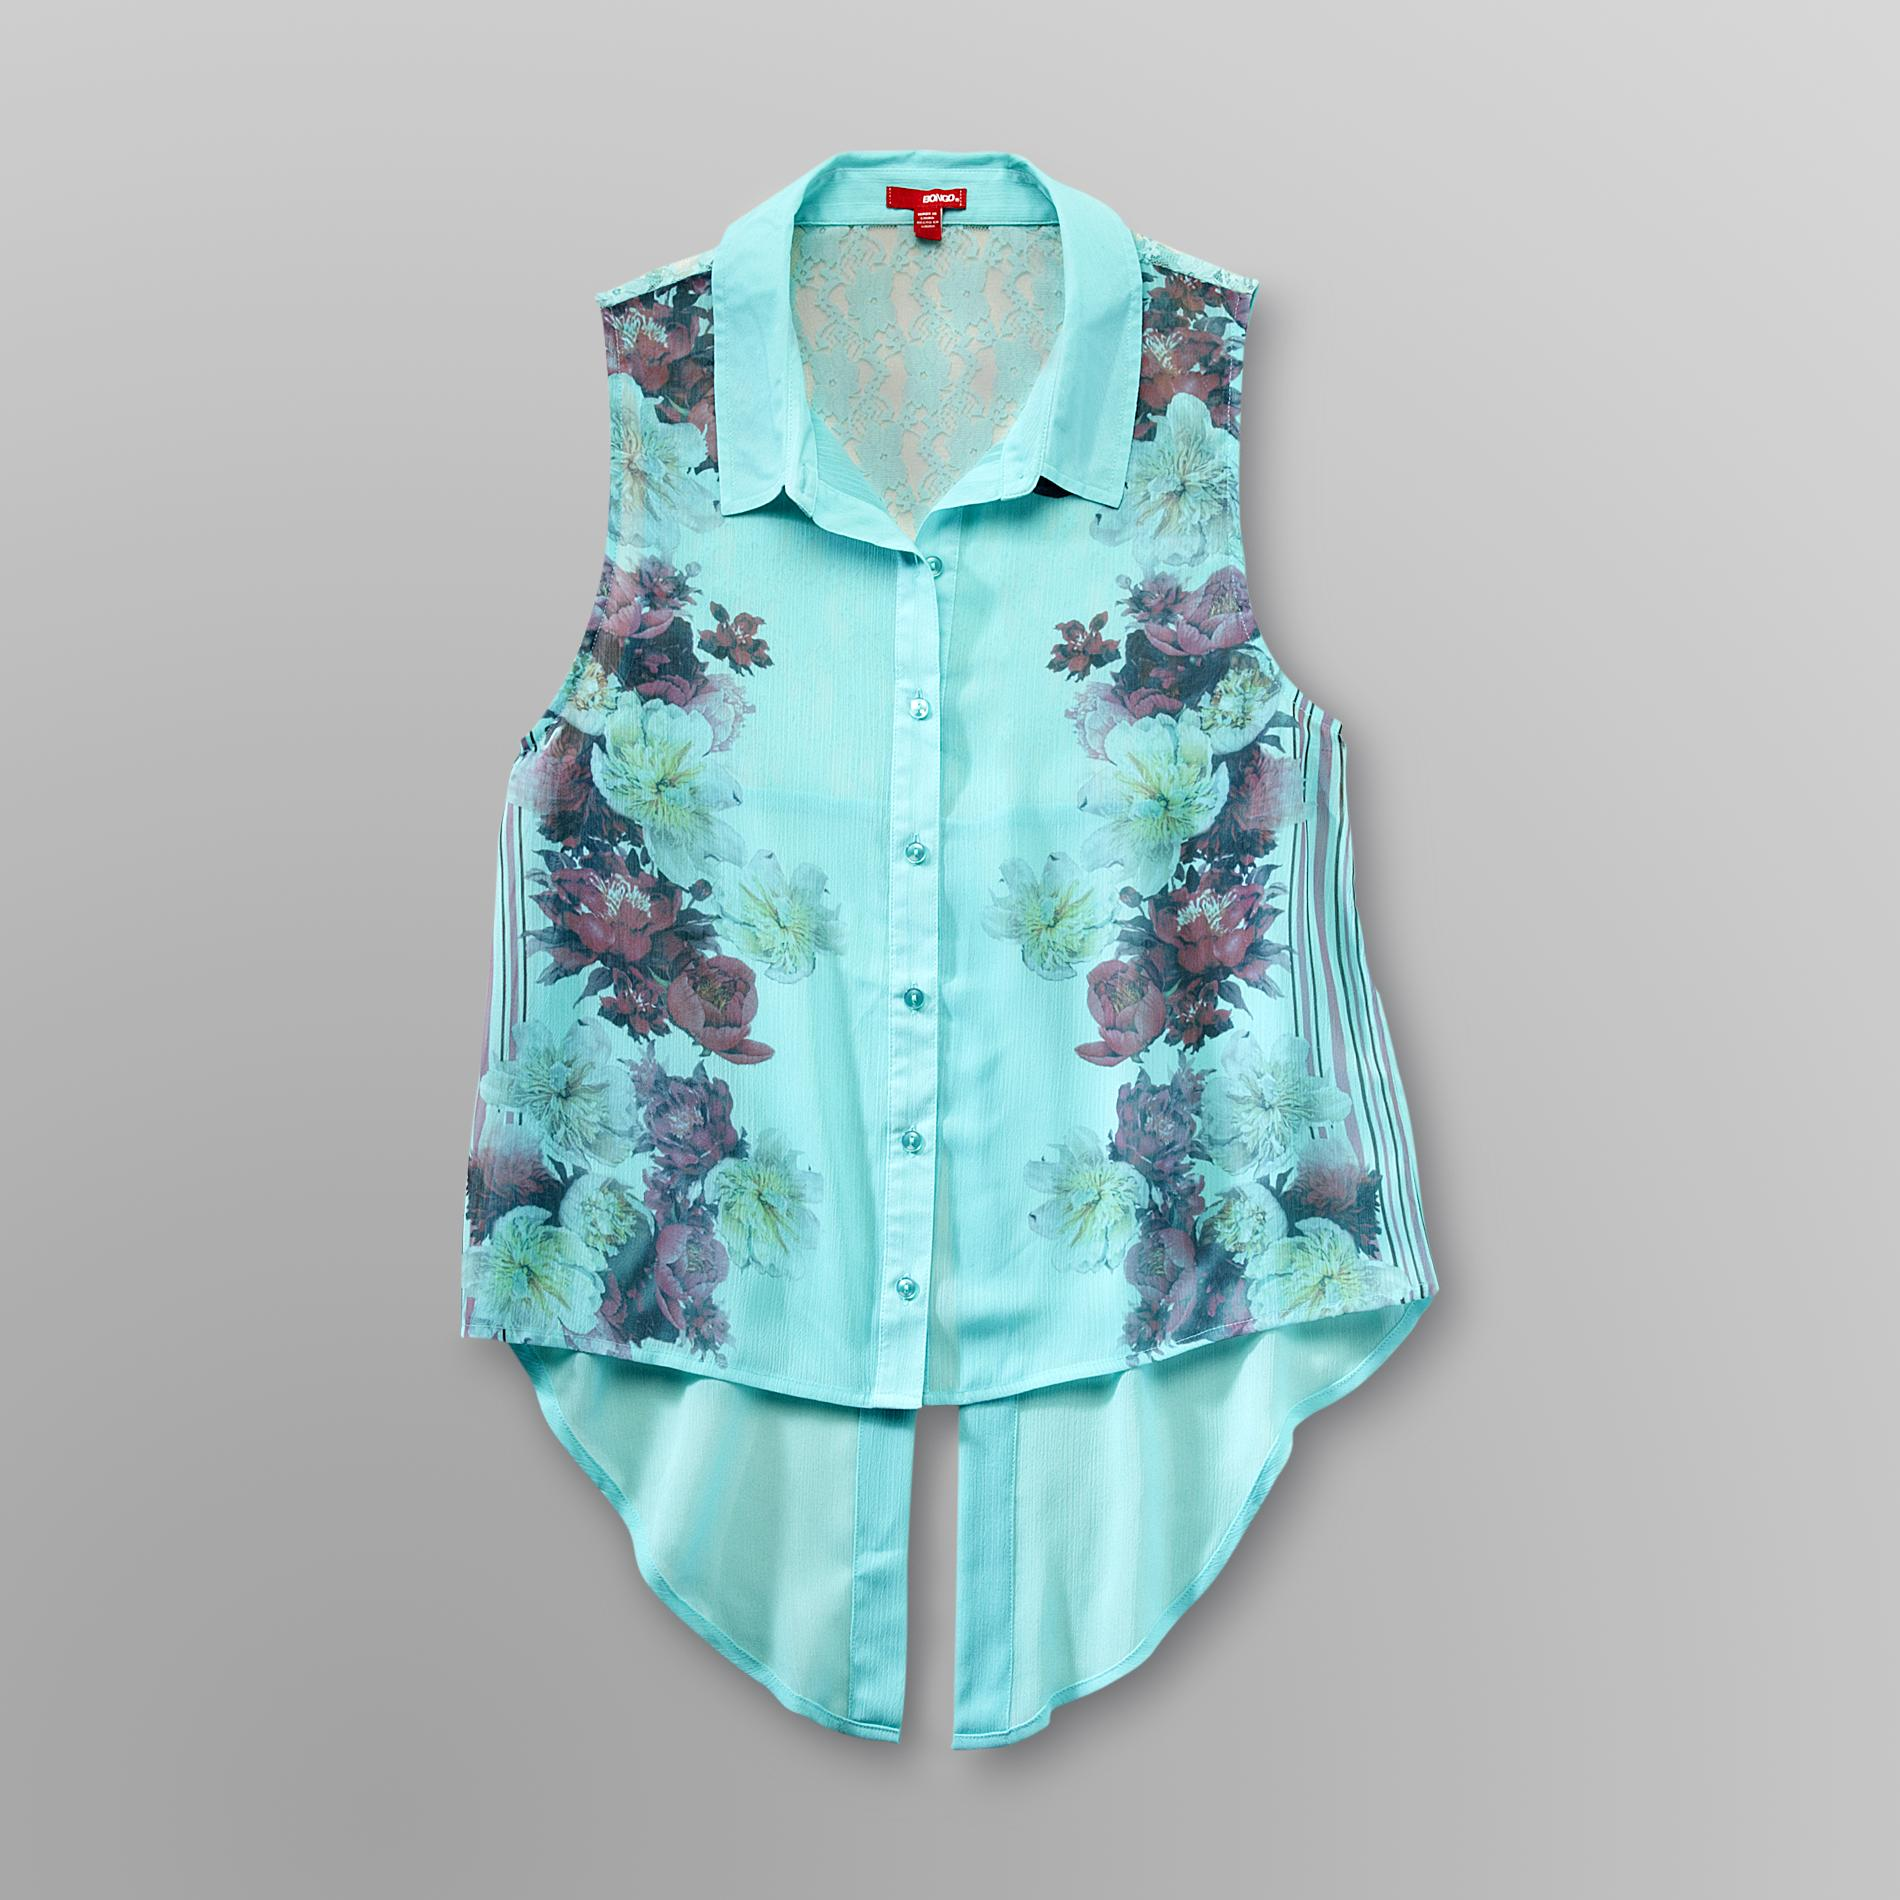 Bongo Junior's Chiffon Drop-Tail Blouse